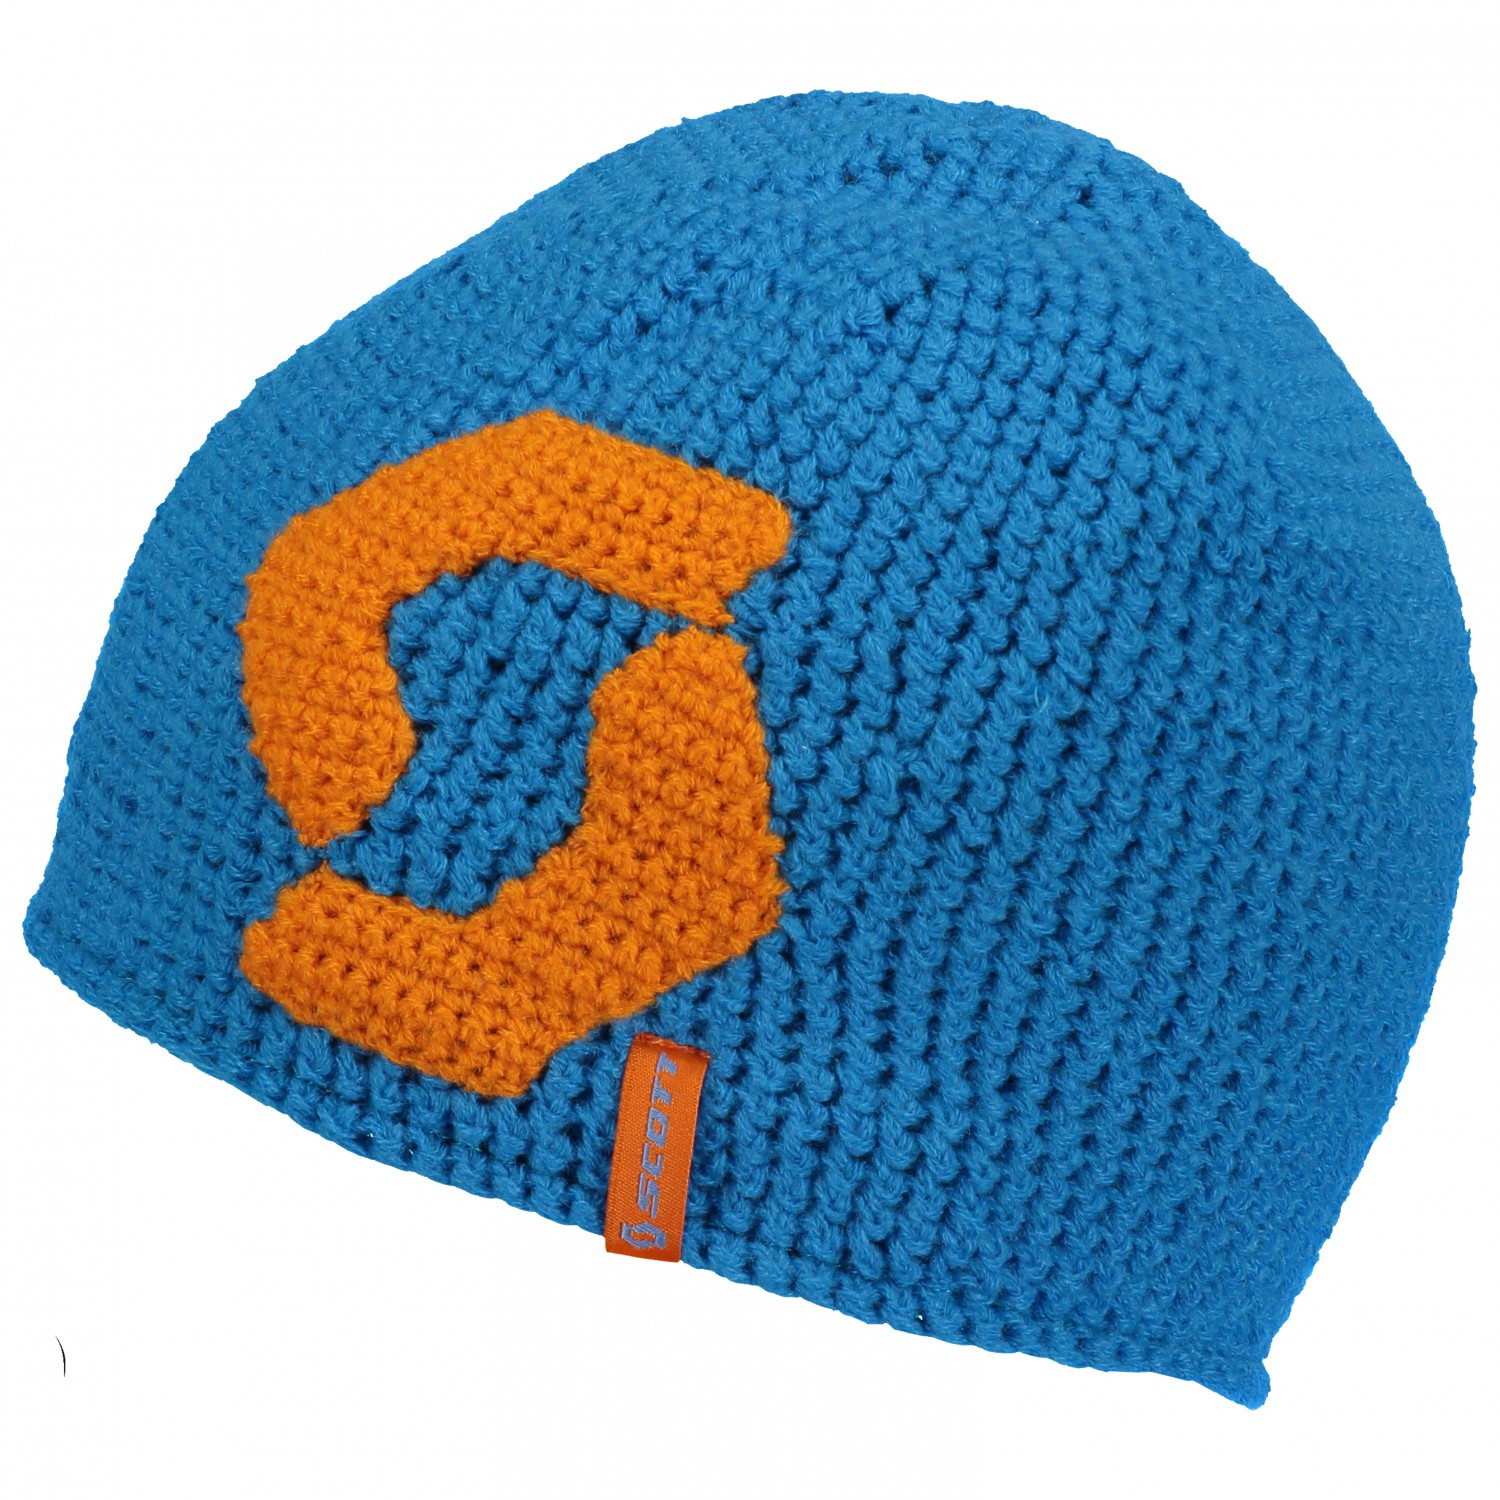 4a1a62a6 Scott Beanie Team 20 - Beanie | Buy online | Alpinetrek.co.uk